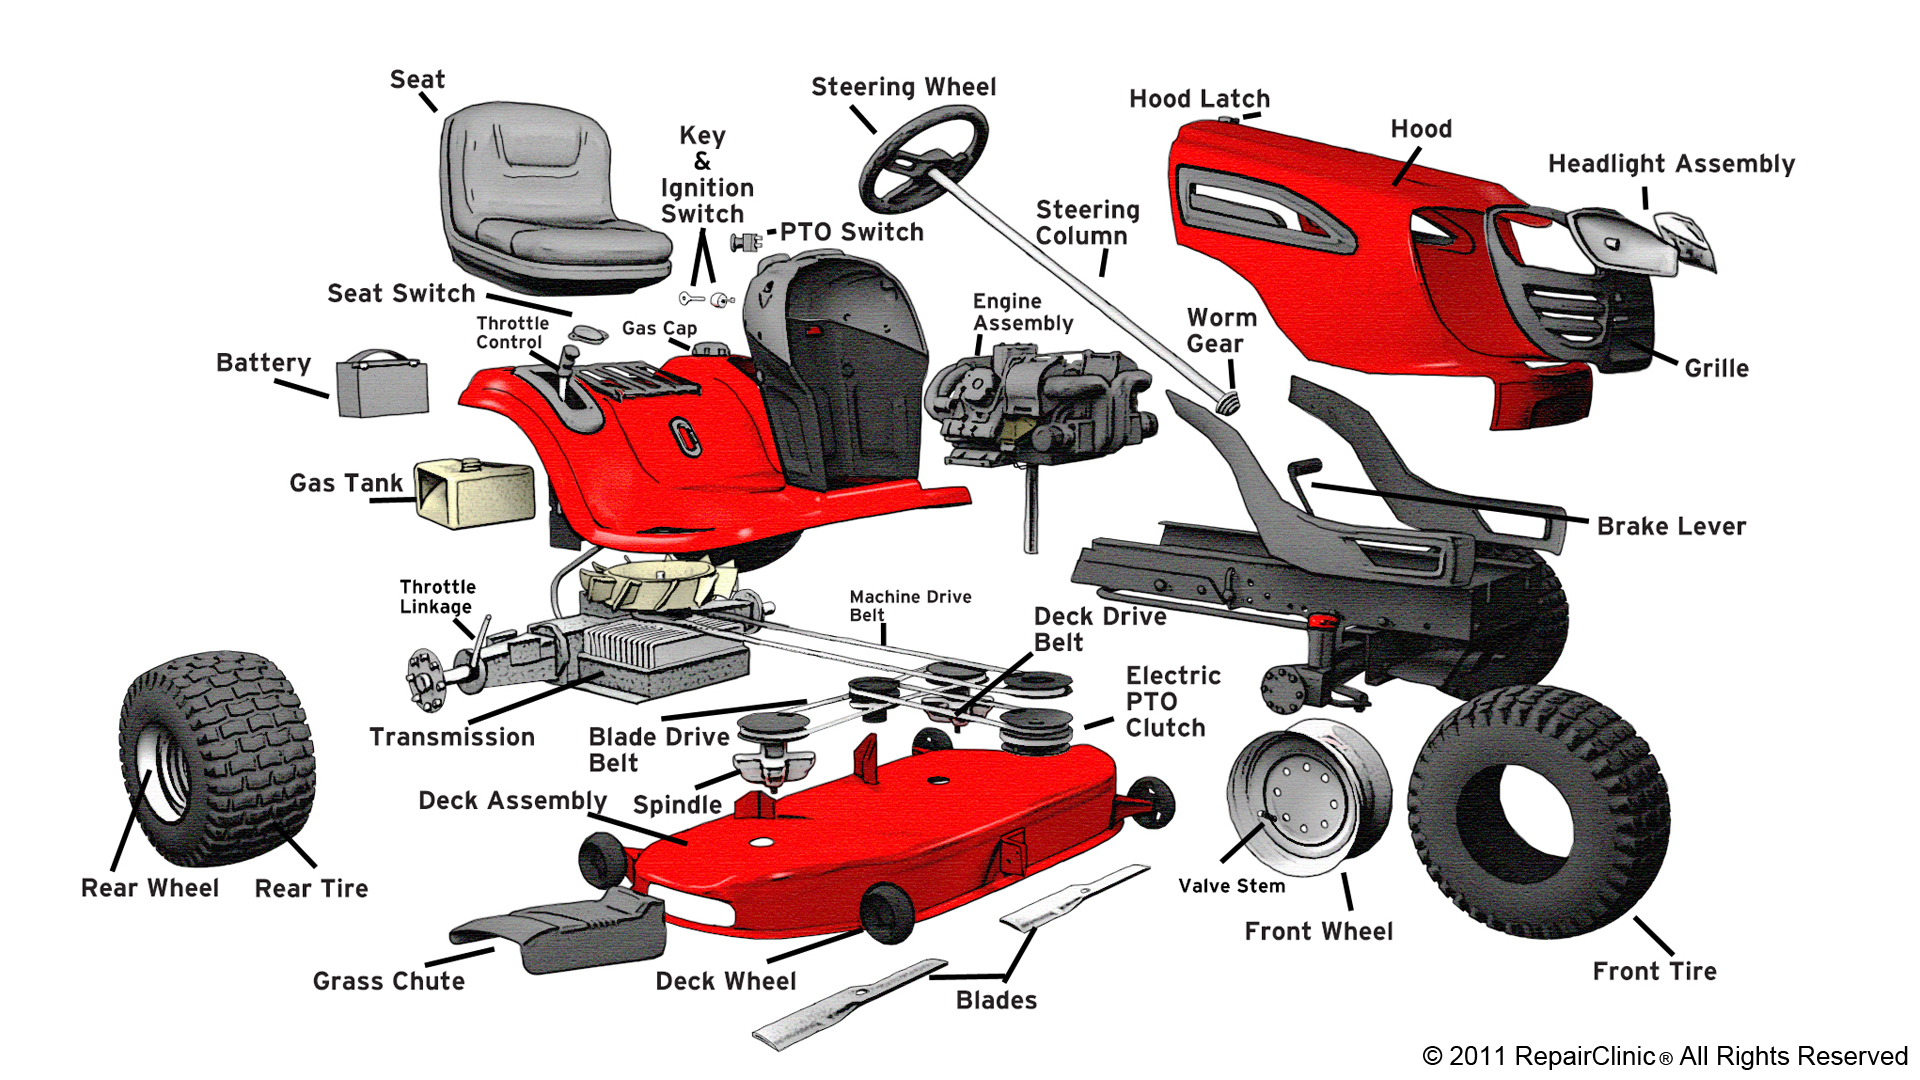 Repair Clinic Schematic Diagram 18 [ murray mower deck spindle ] murray riding mower repair husqvarna riding mower wiring diagram at gsmx.co